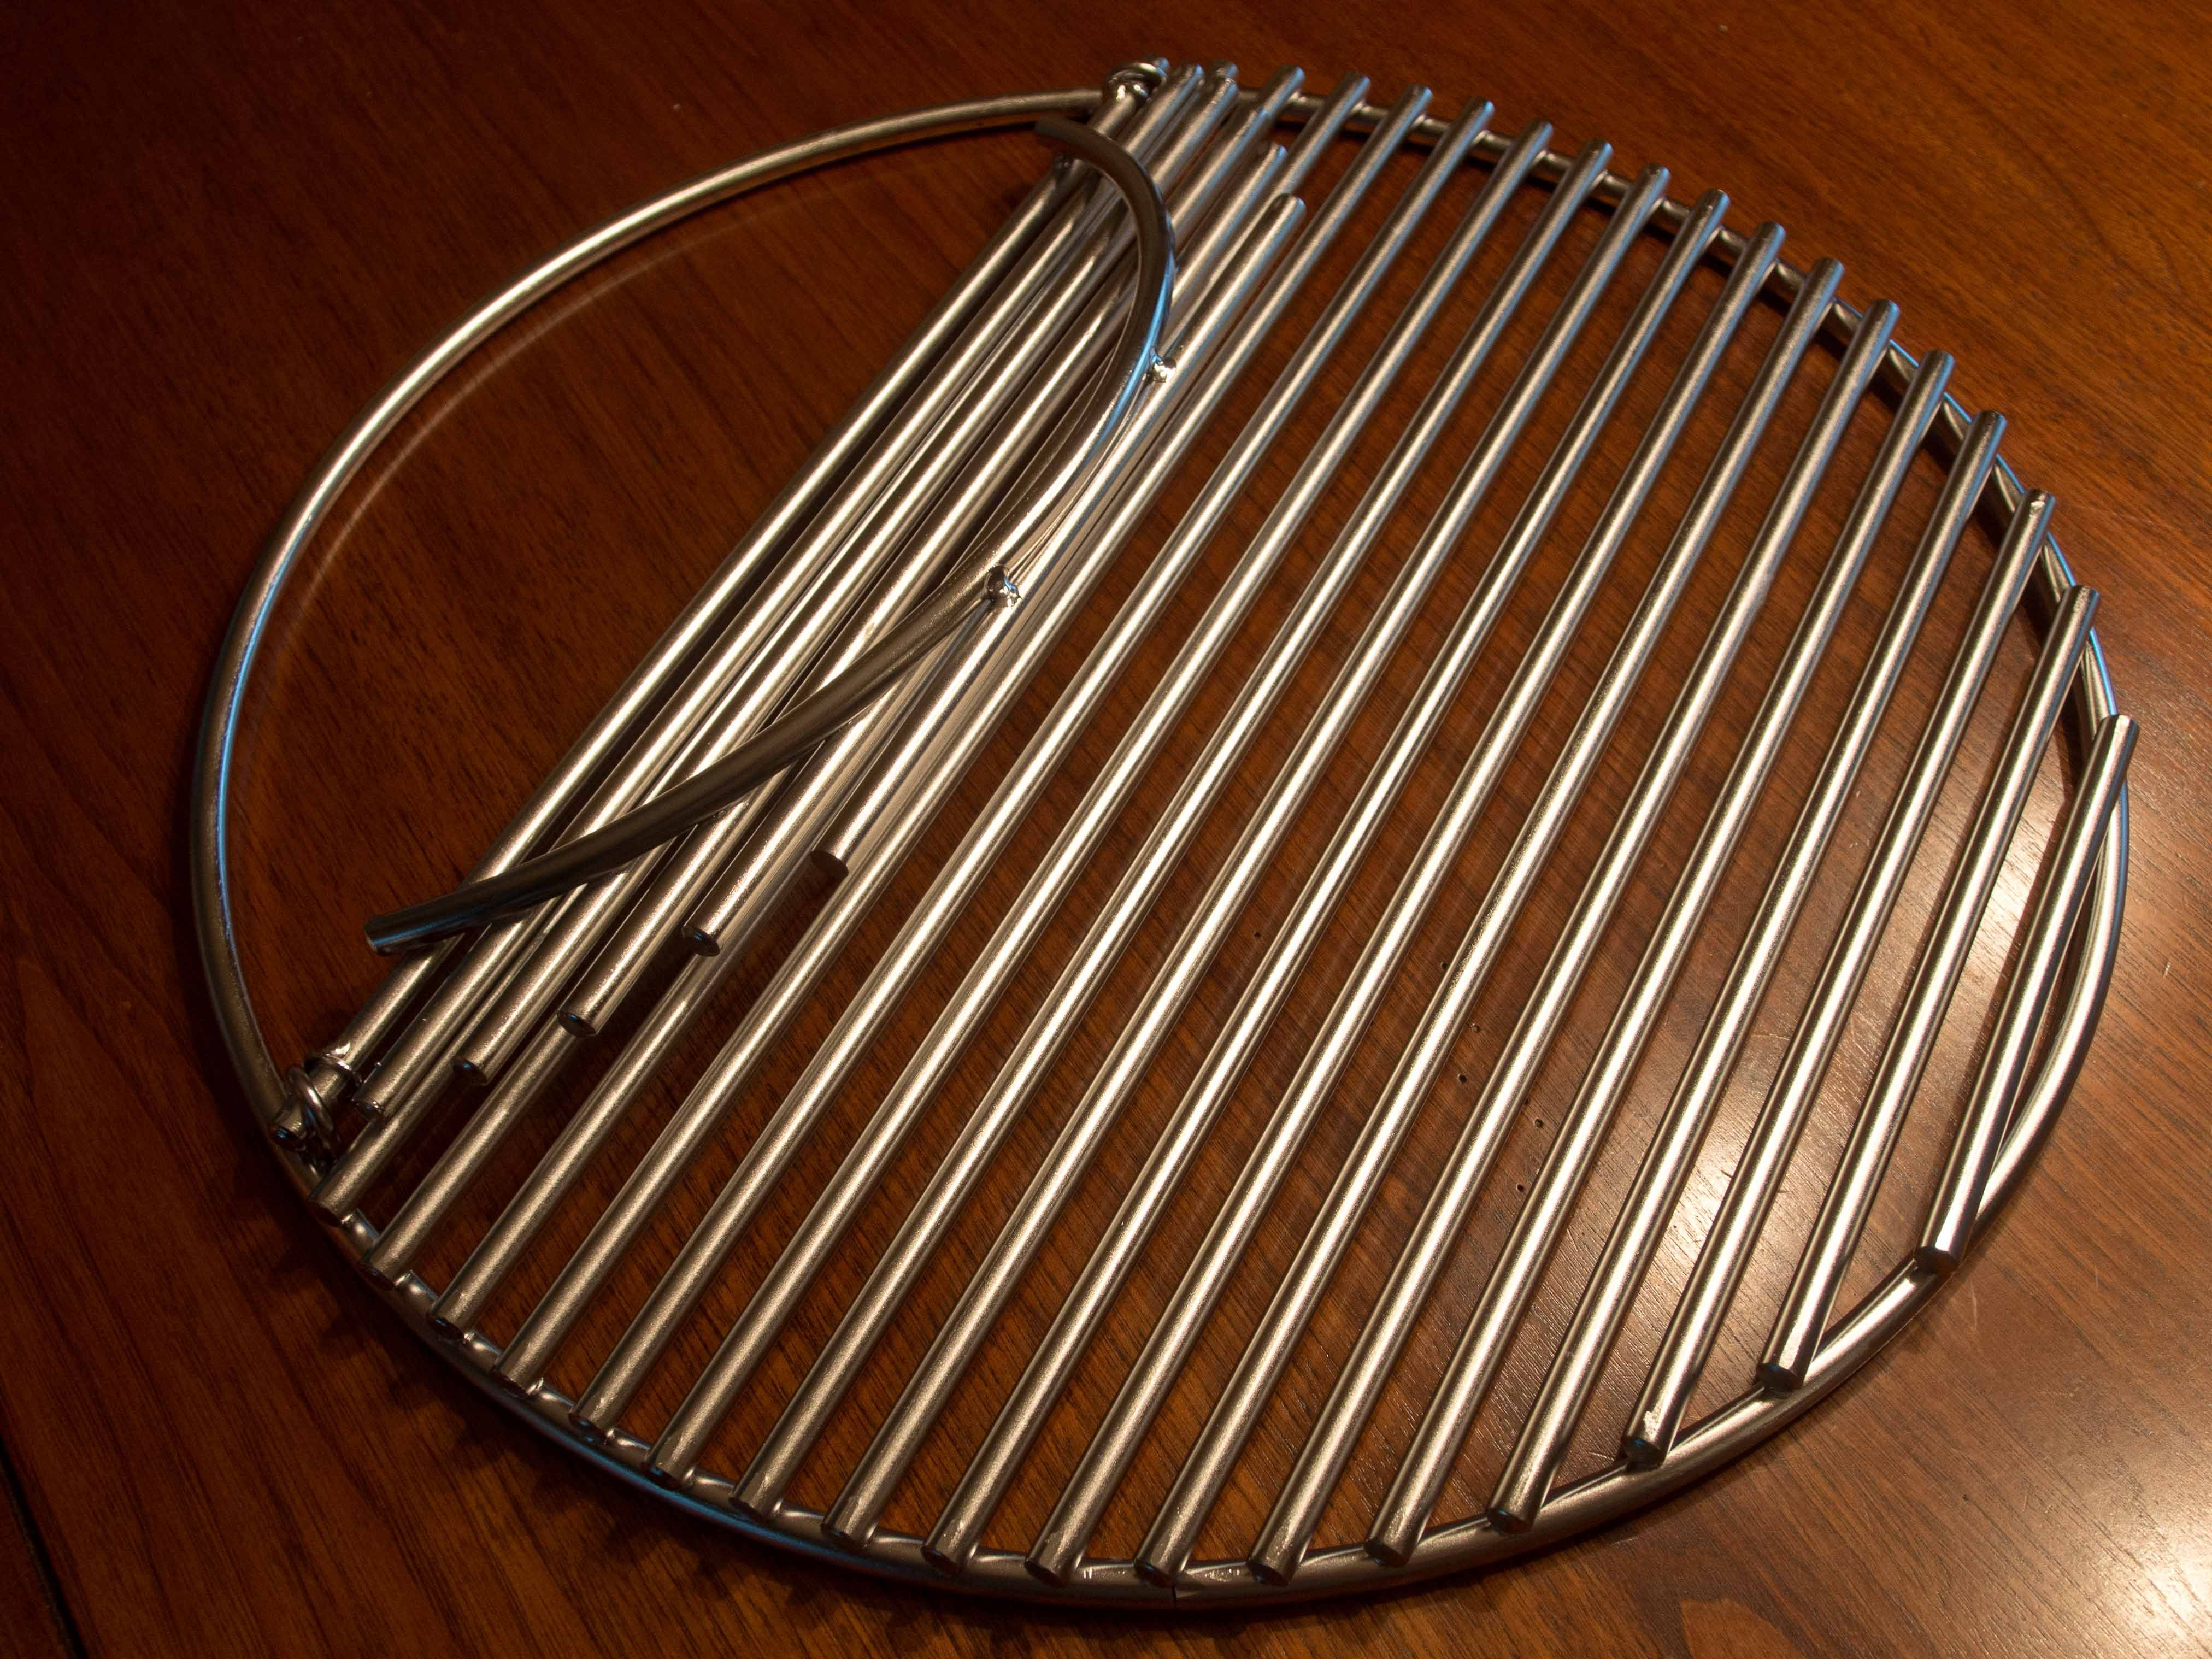 fire pit cooking grates heavy duty | The grate also features a hinged access door & fire pit cooking grates heavy duty | The grate also features a ... Pezcame.Com